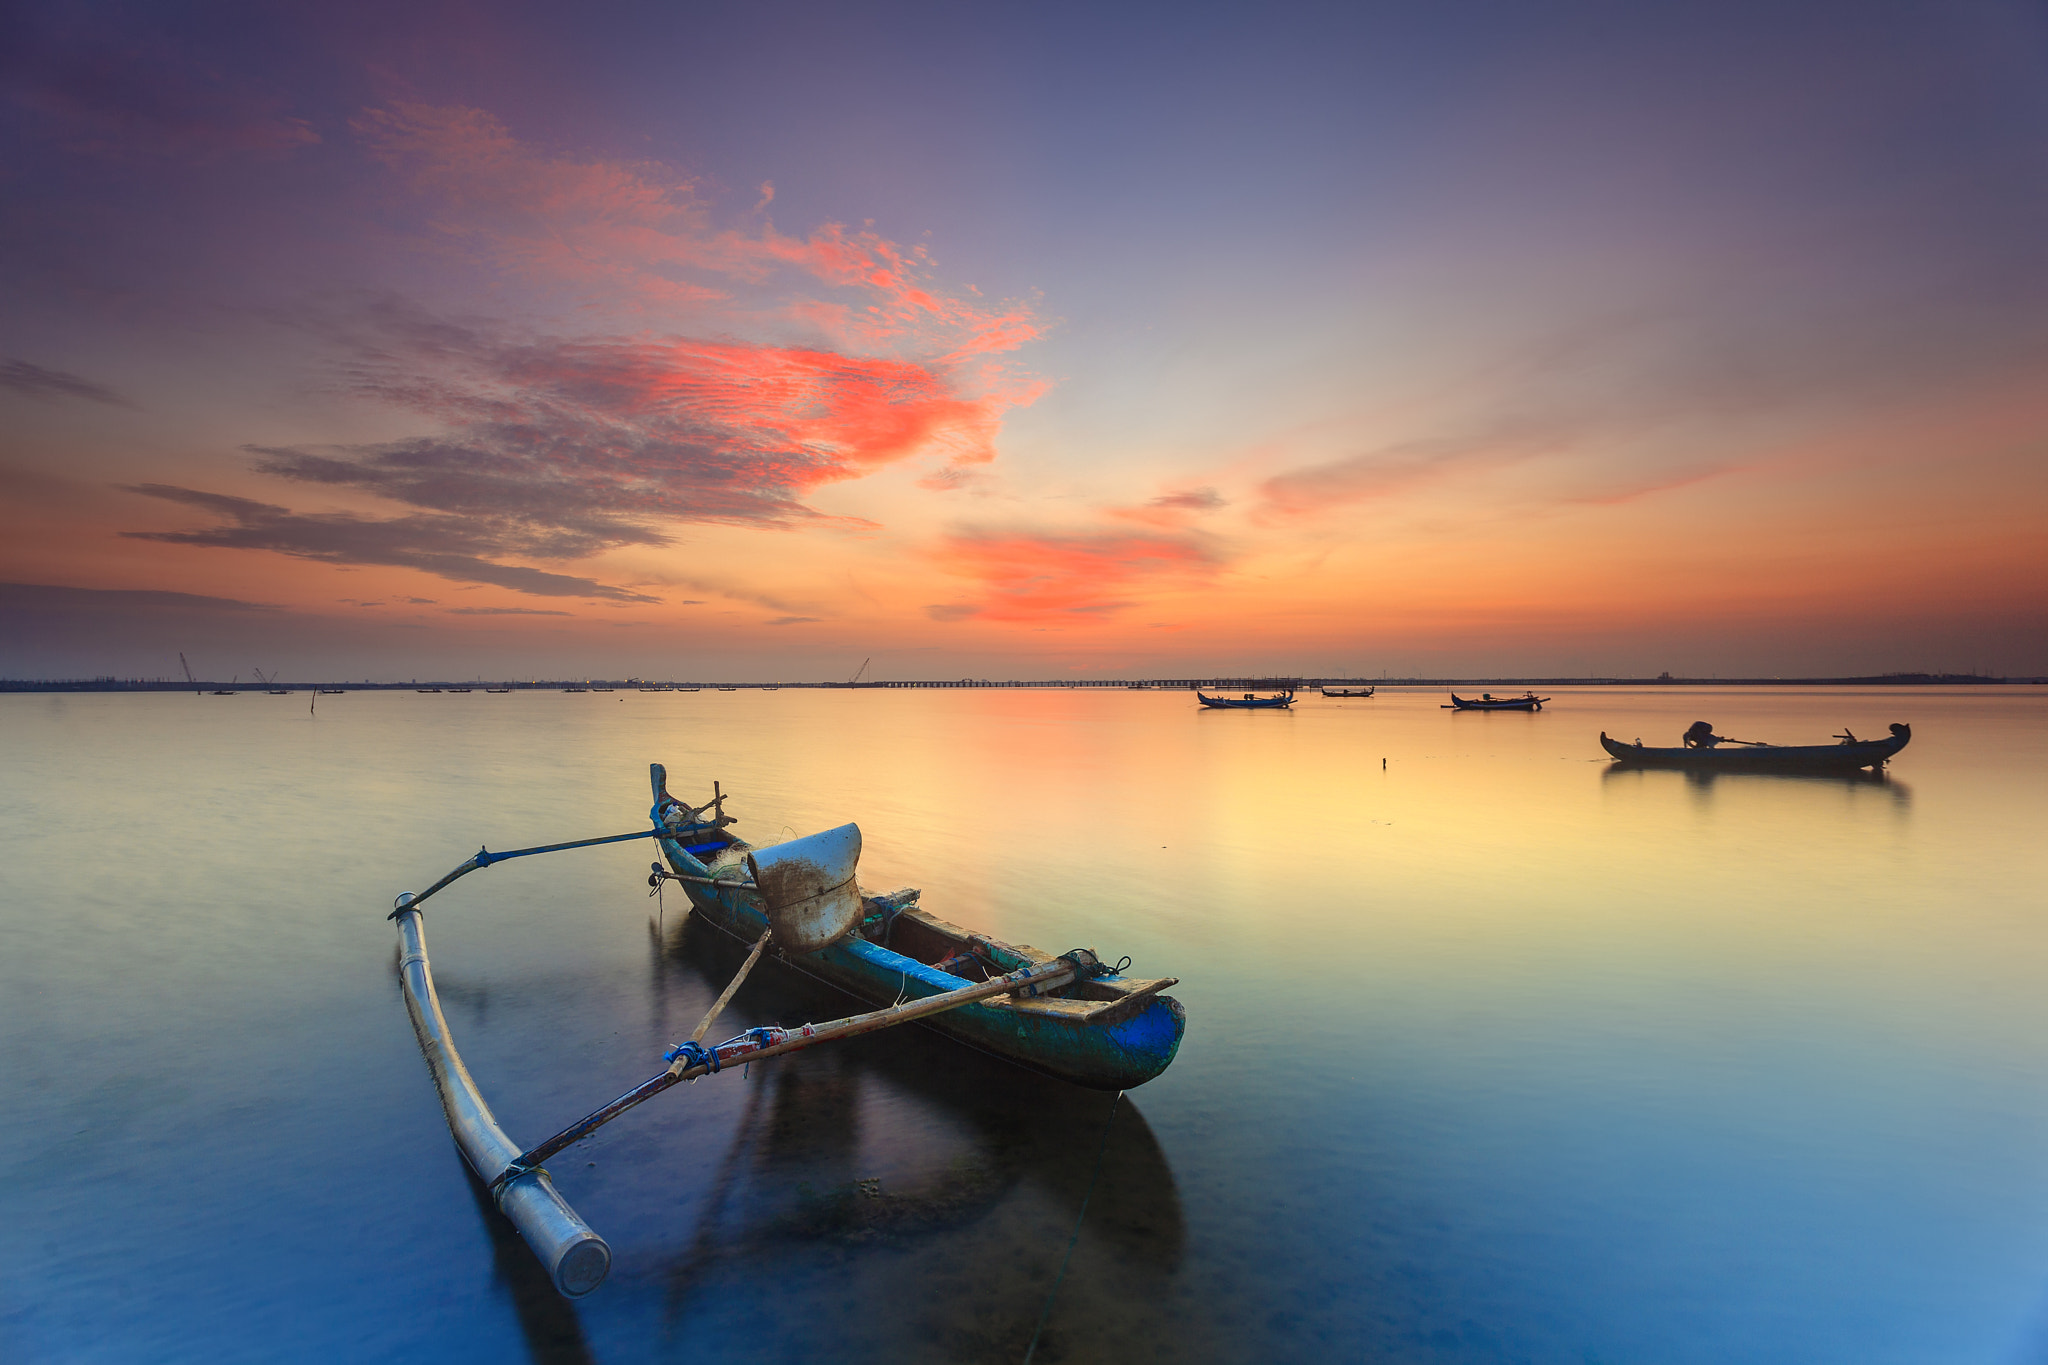 Photograph The Perahu by Parulian Parulian on 500px